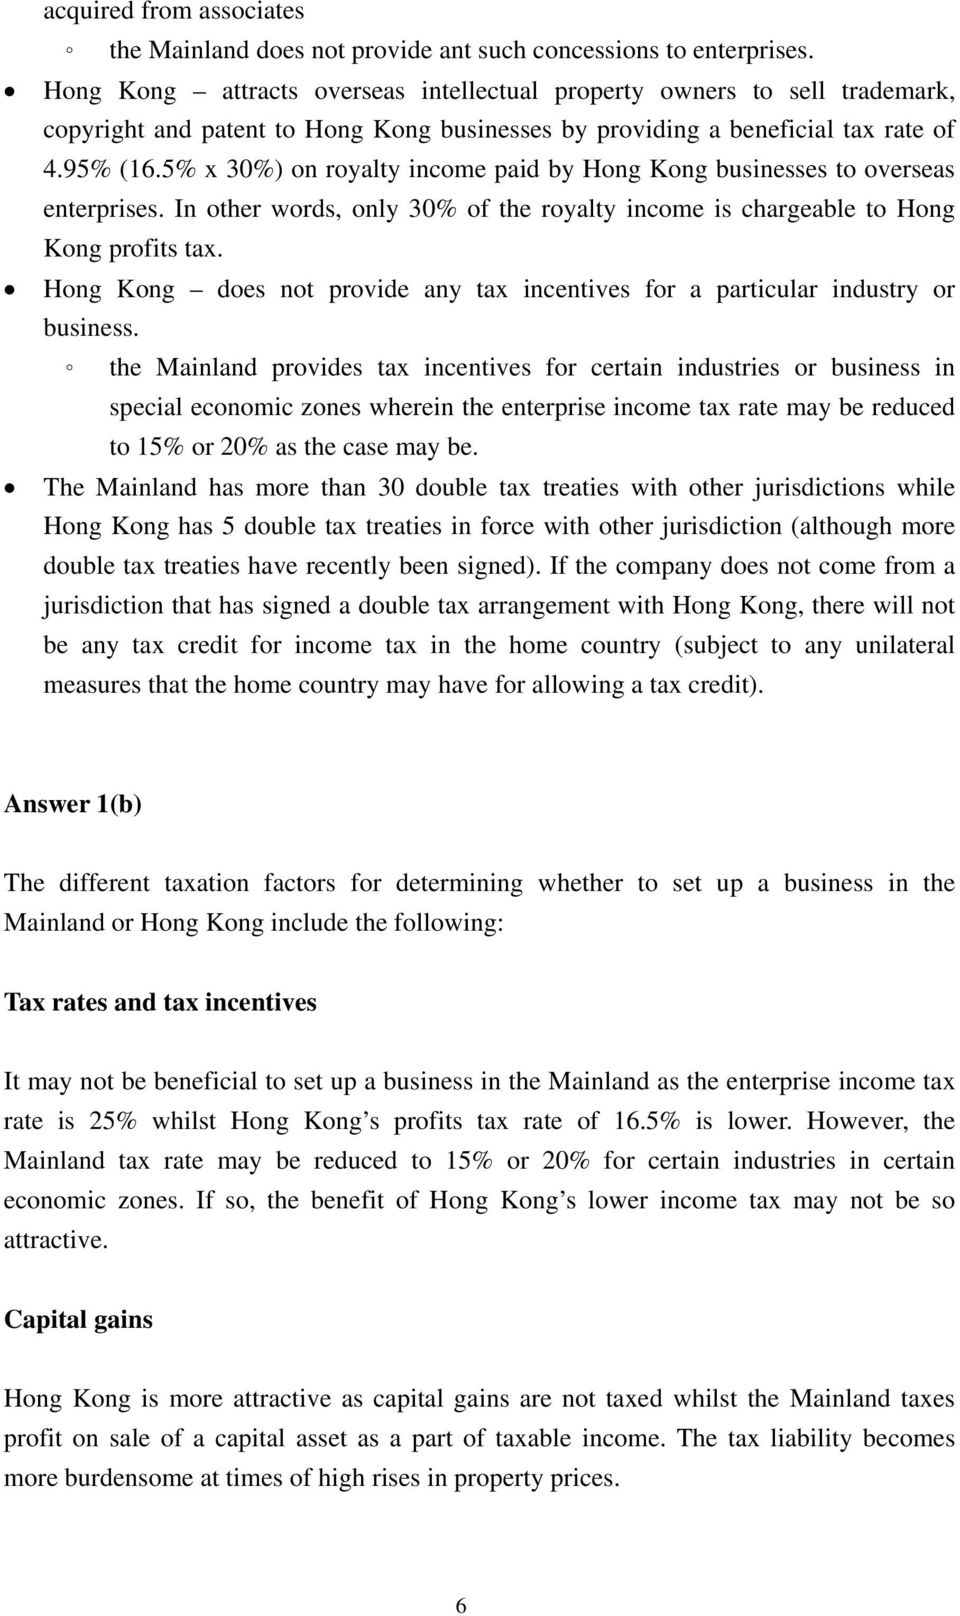 5% x 30%) on royalty income paid by Hong Kong businesses to overseas enterprises. In other words, only 30% of the royalty income is chargeable to Hong Kong profits tax.